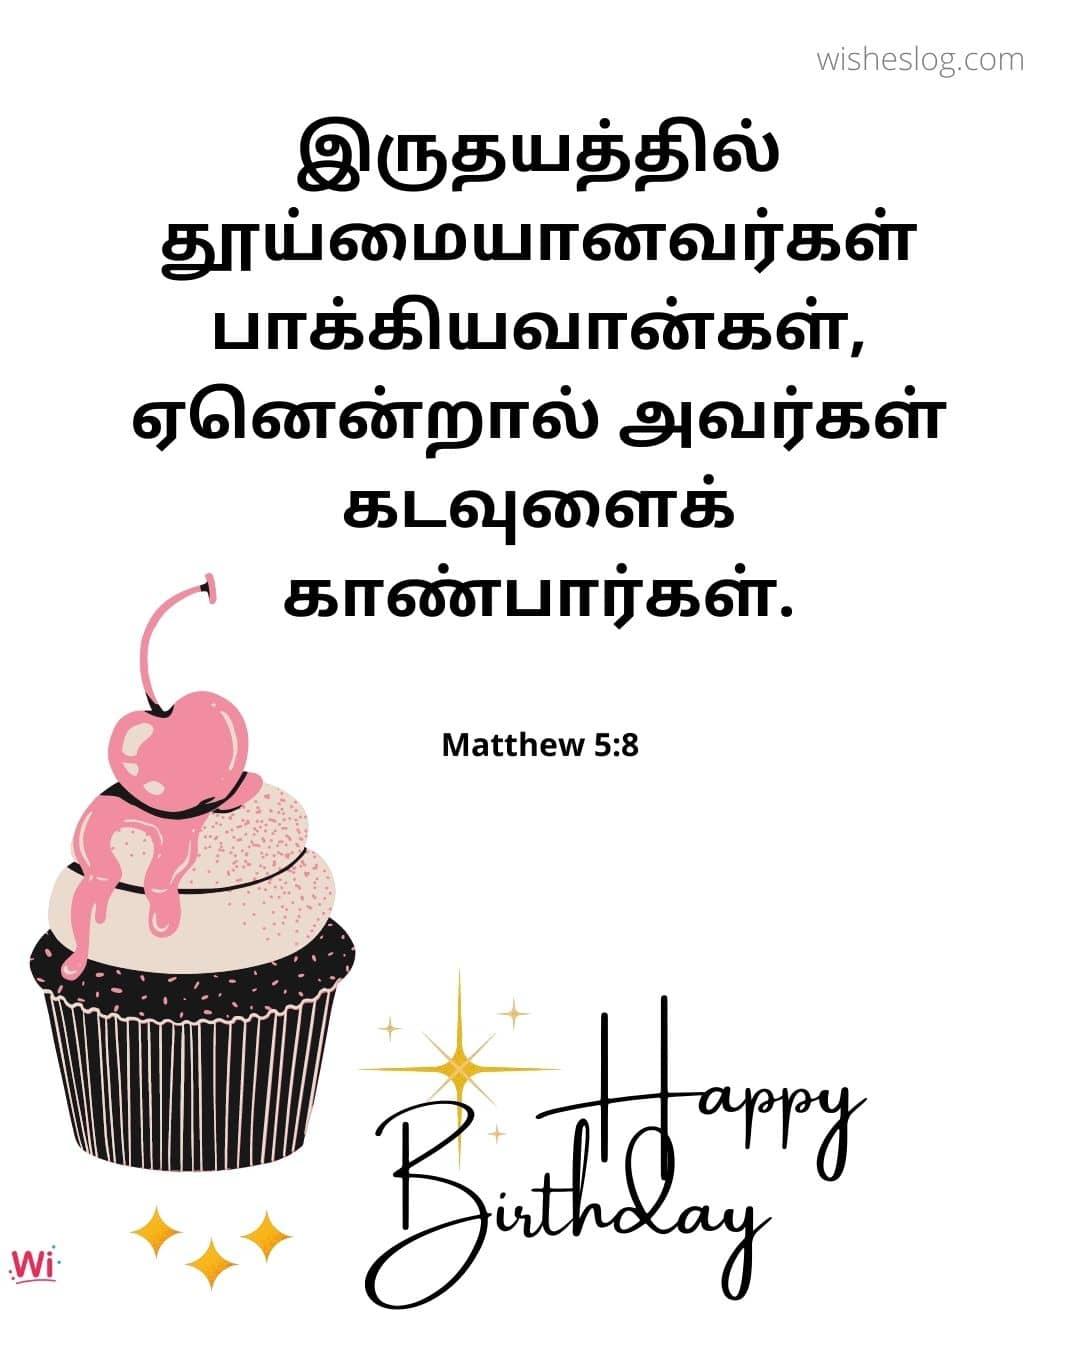 birthday wishes with bible verses in tamil